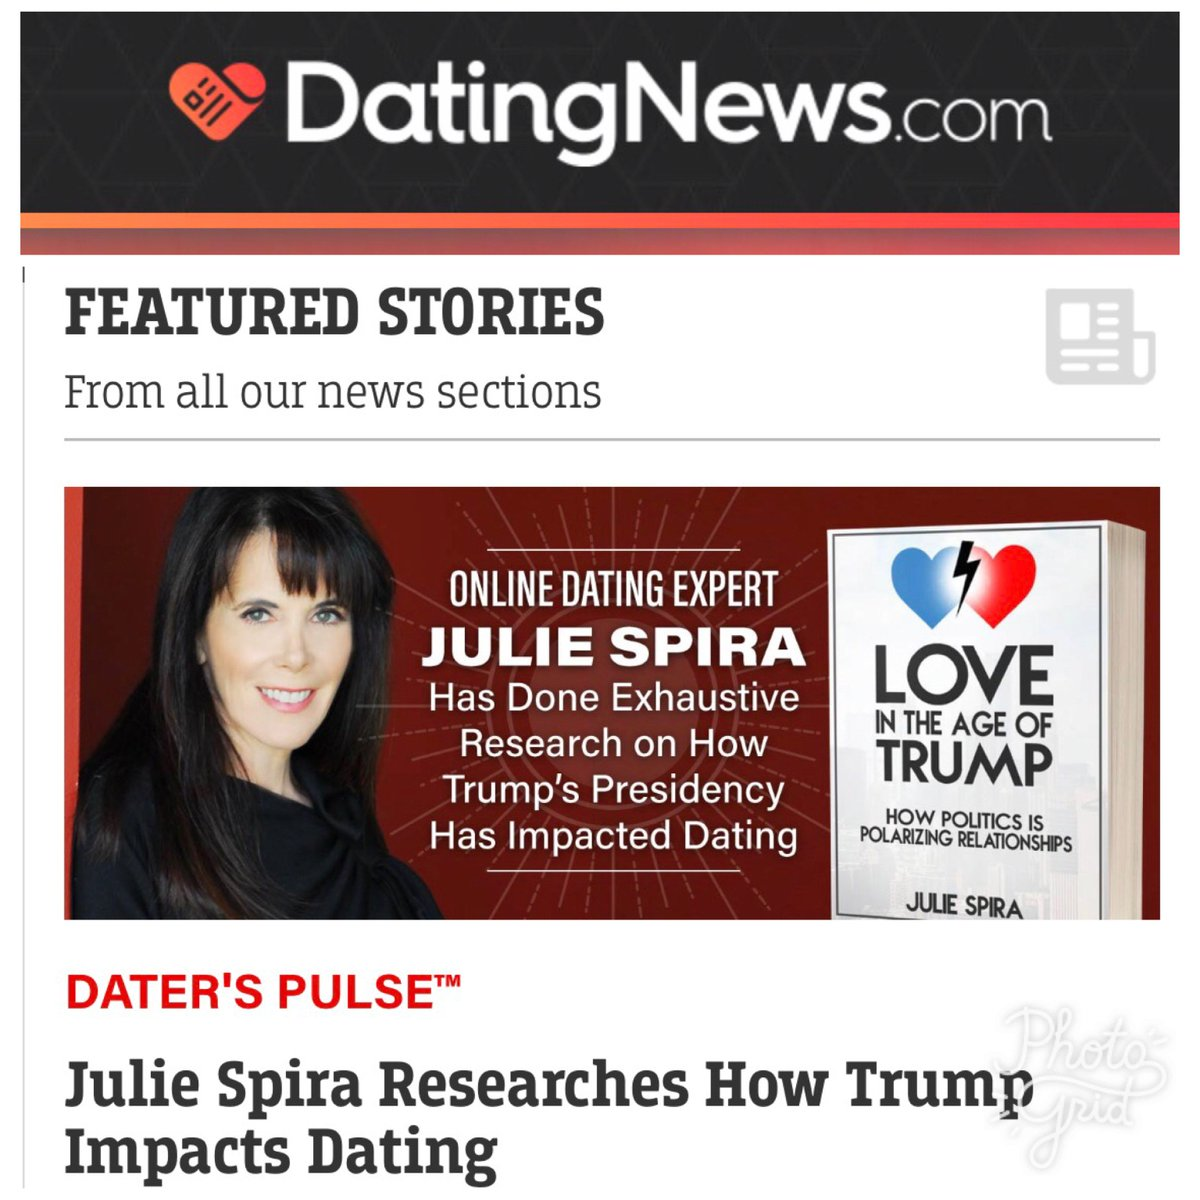 Julie spira cyber dating expert book